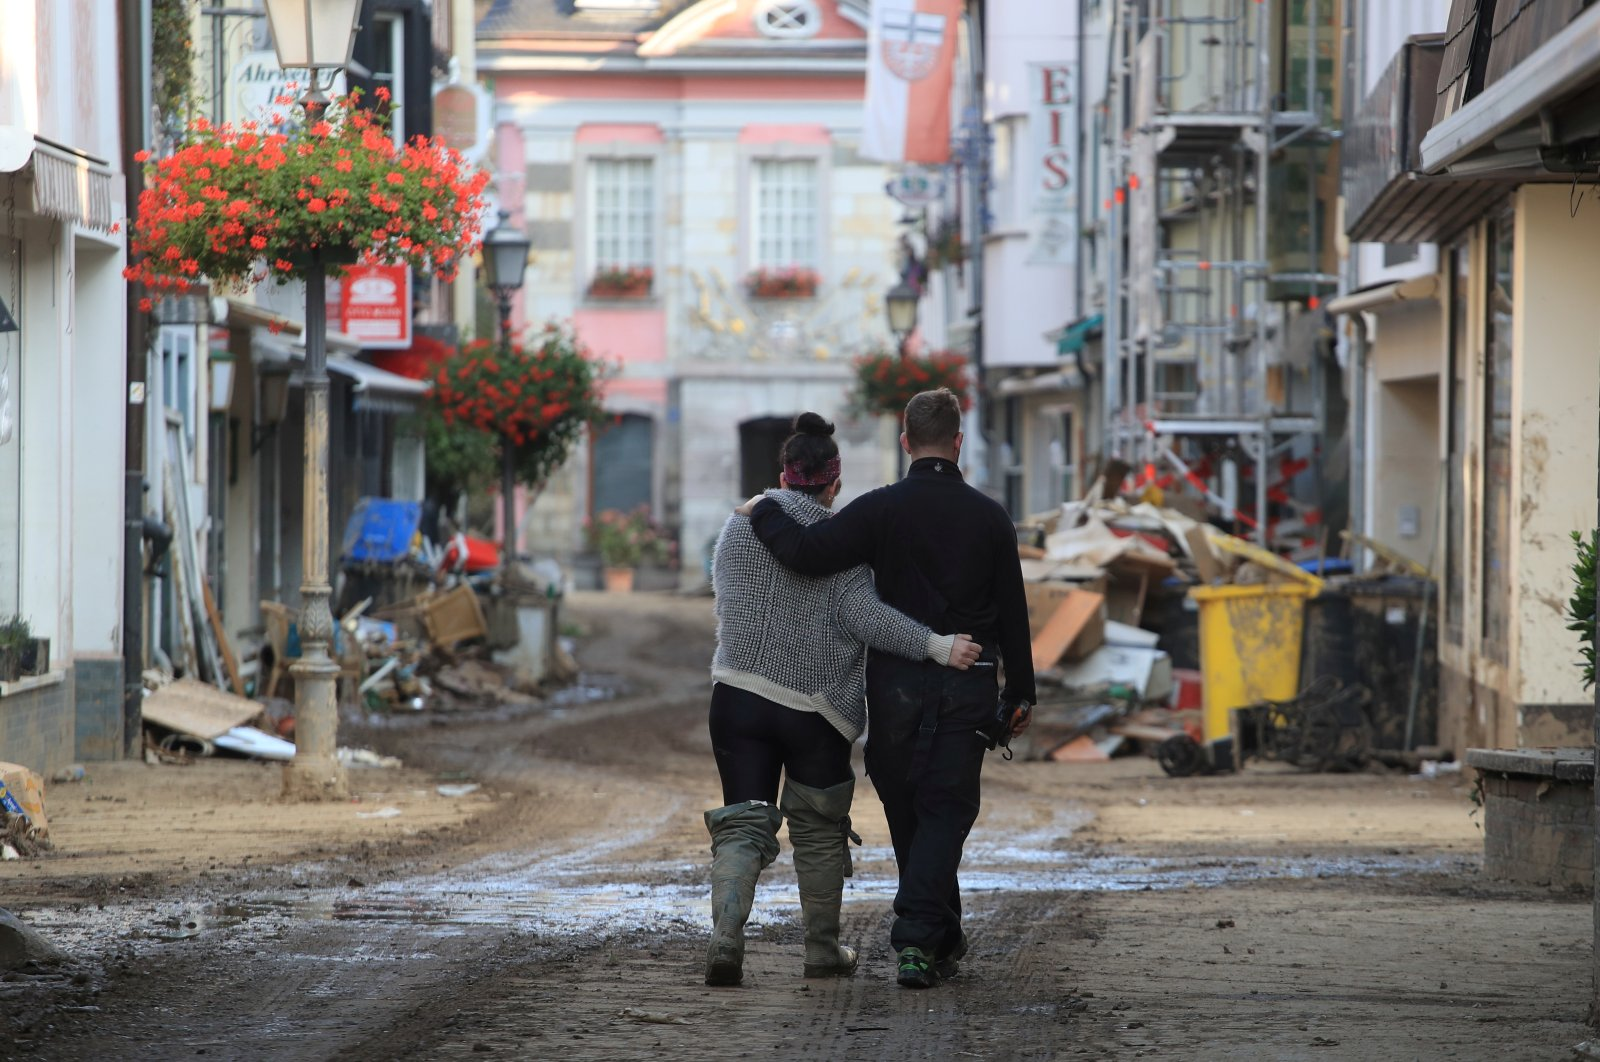 A couple walks on a street in Bad Neuenahr-Ahrweiler, along the Ahr river in Rhineland-Palatinate state, Germany, July 22, 2021. (Reuters Photo)